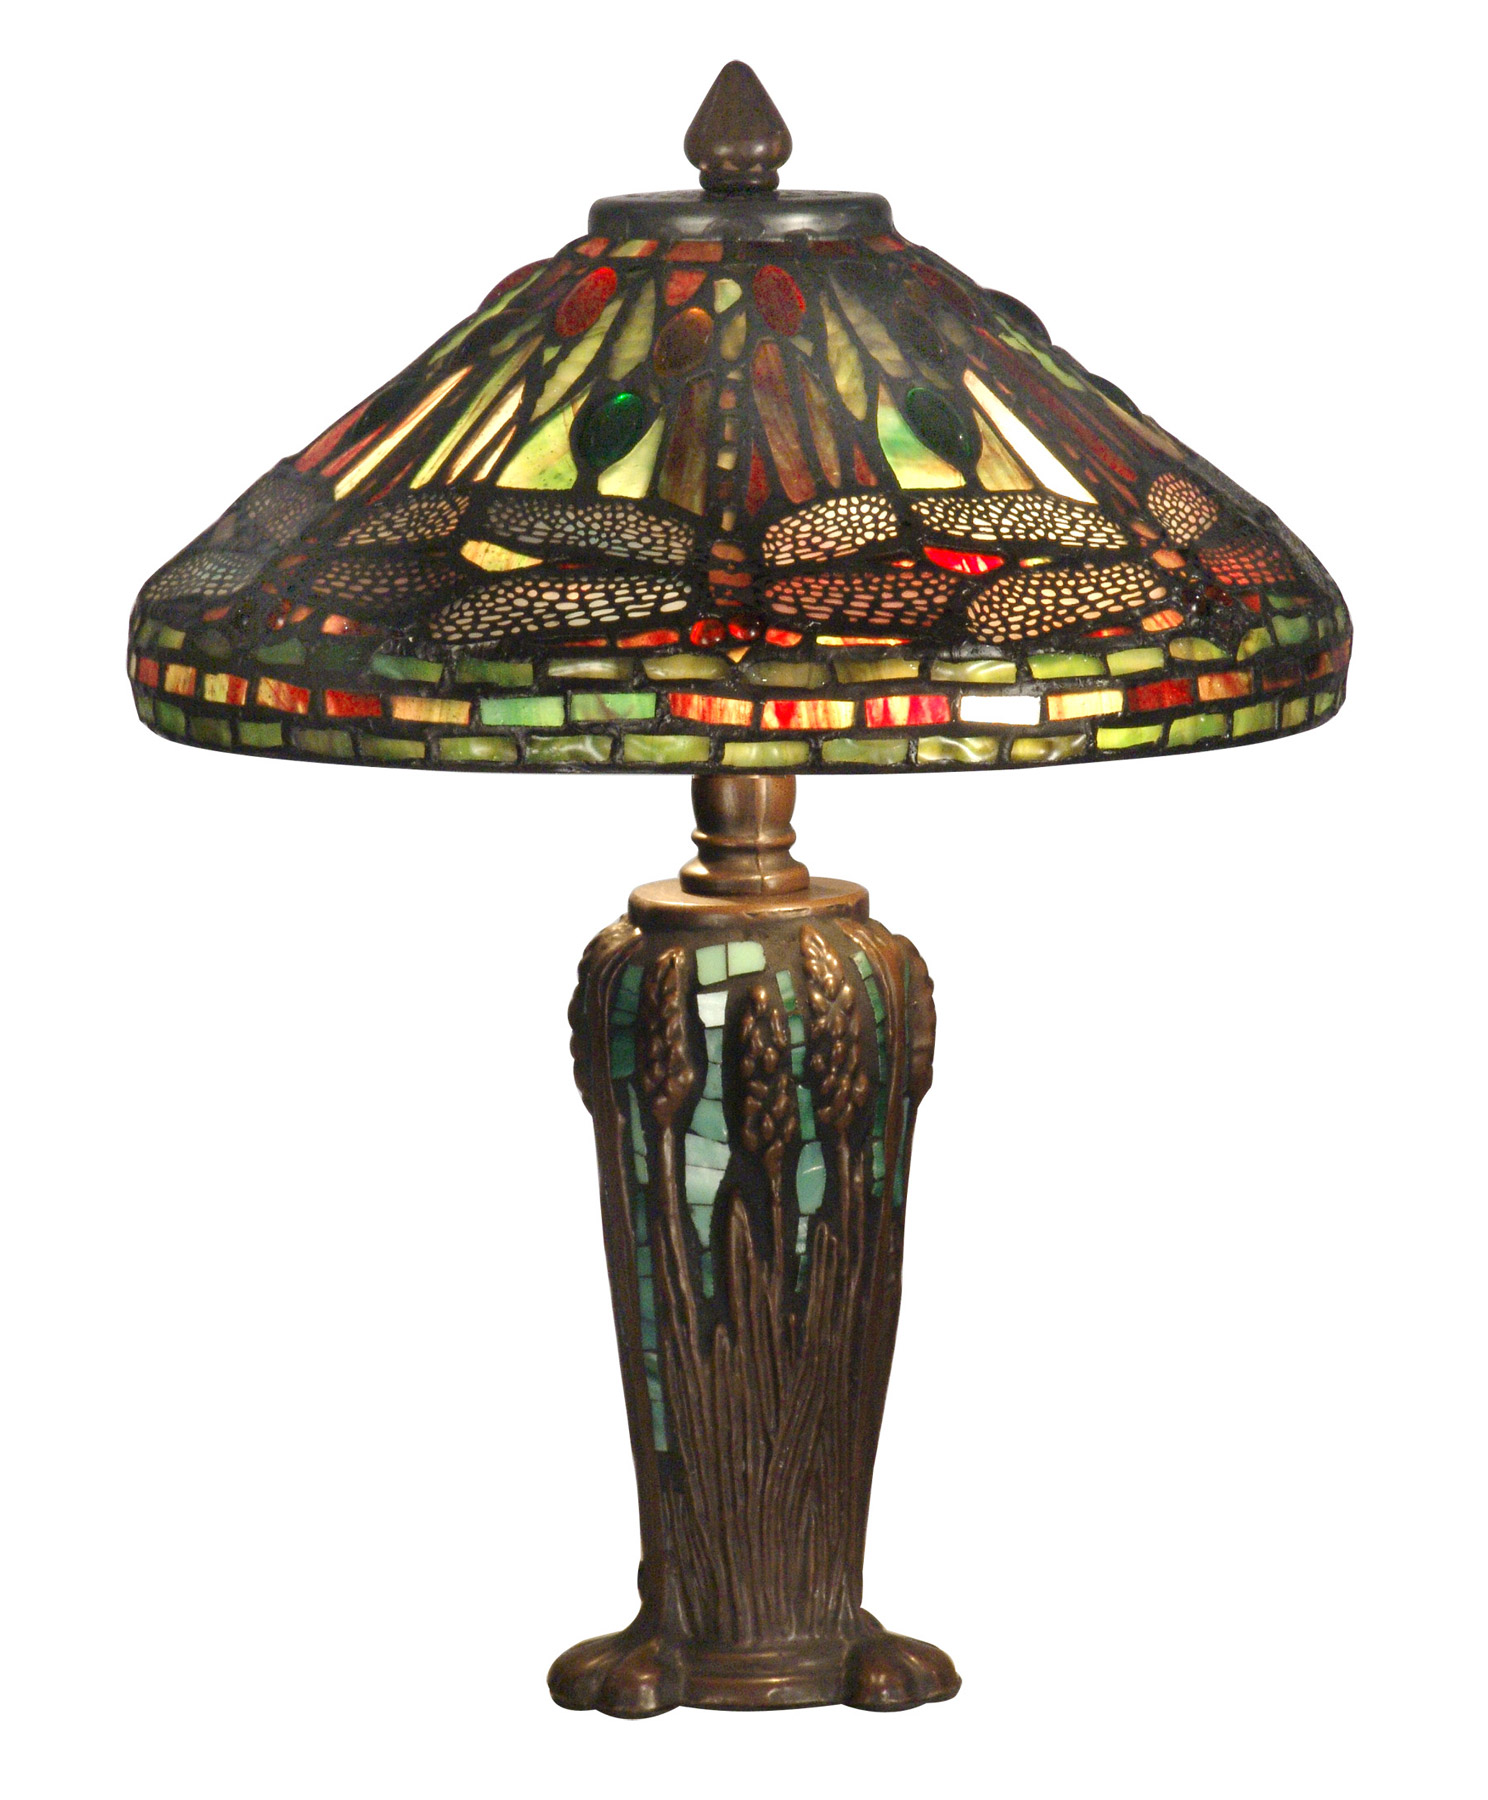 home lamps table lamps accent lamps dale tiffany tt10333. Black Bedroom Furniture Sets. Home Design Ideas